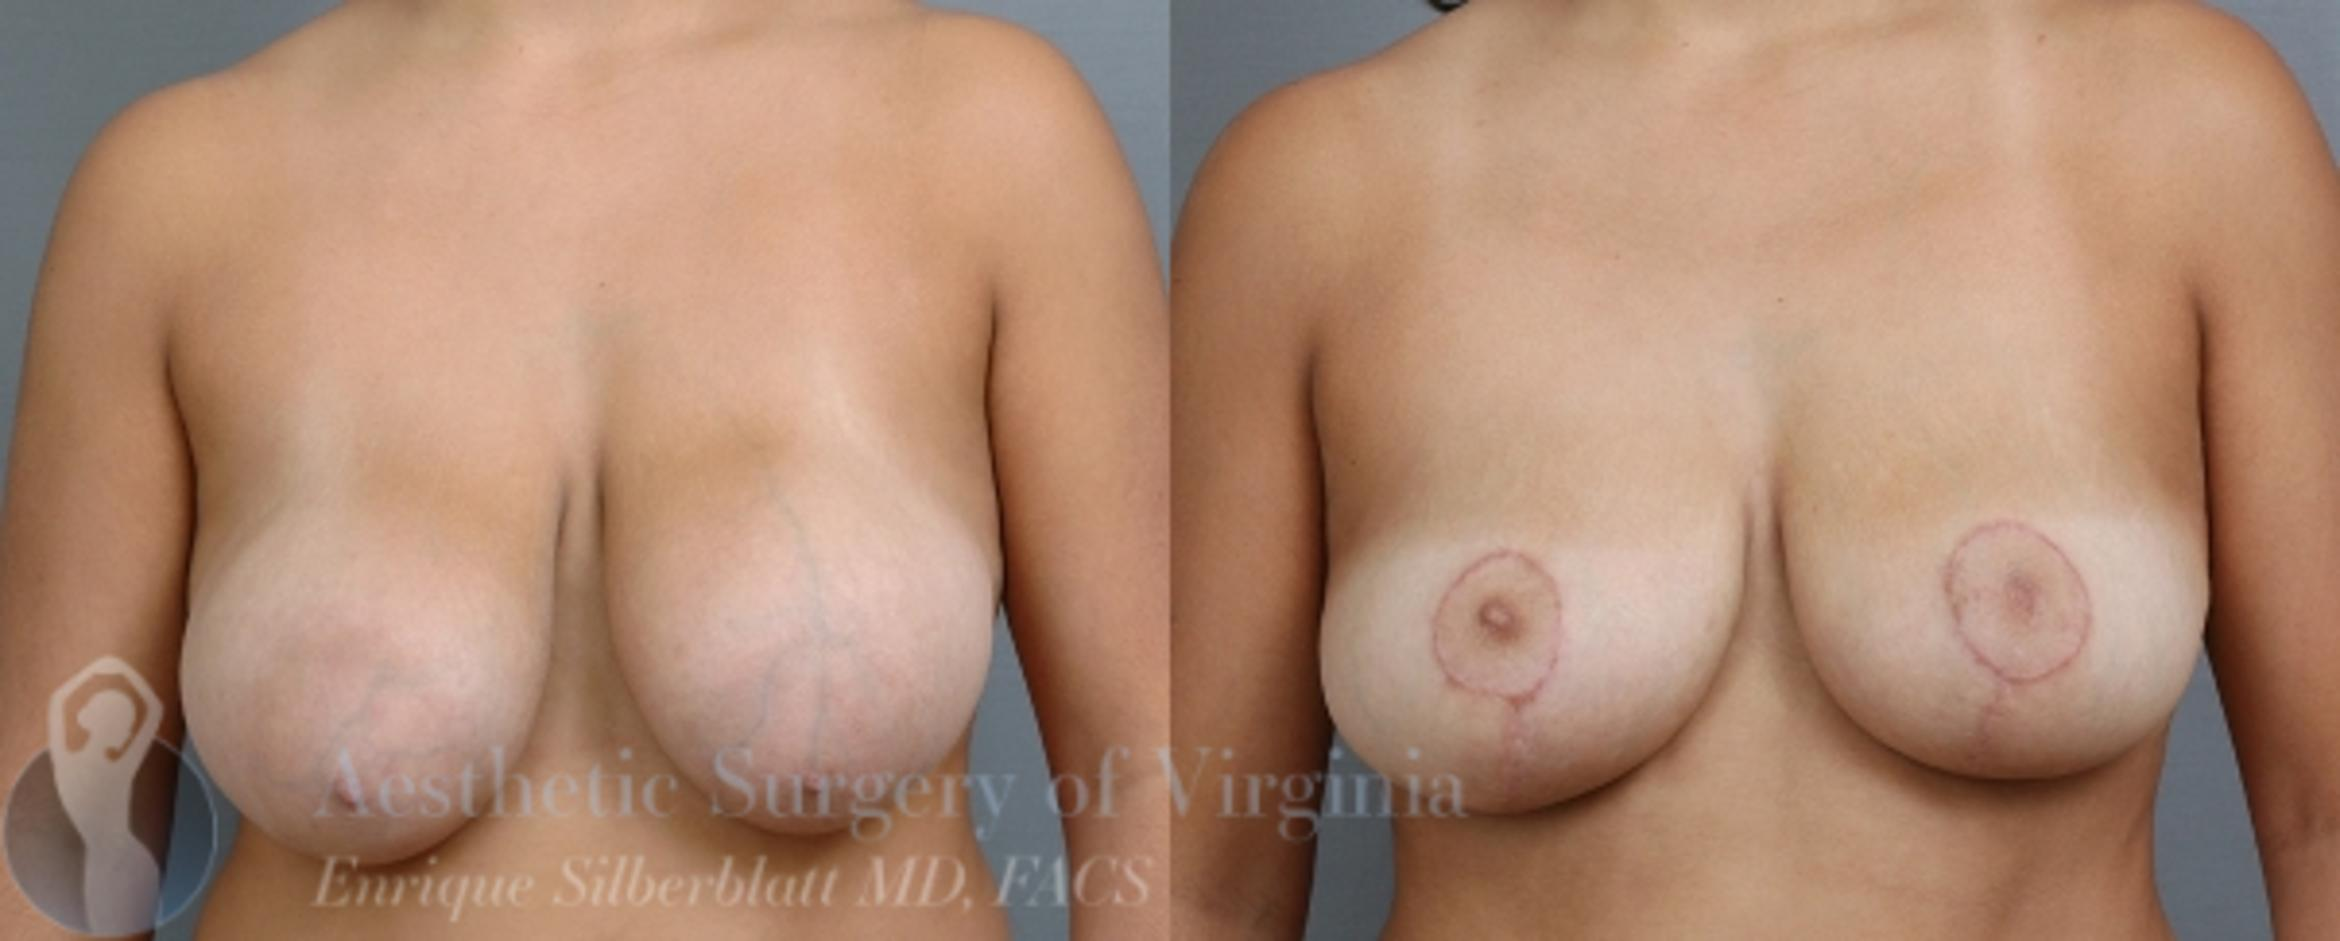 Breast Reduction Case 22 Before & After View #1 | Roanoke, VA | Aesthetic Surgery of Virginia: Enrique Silberblatt, MD